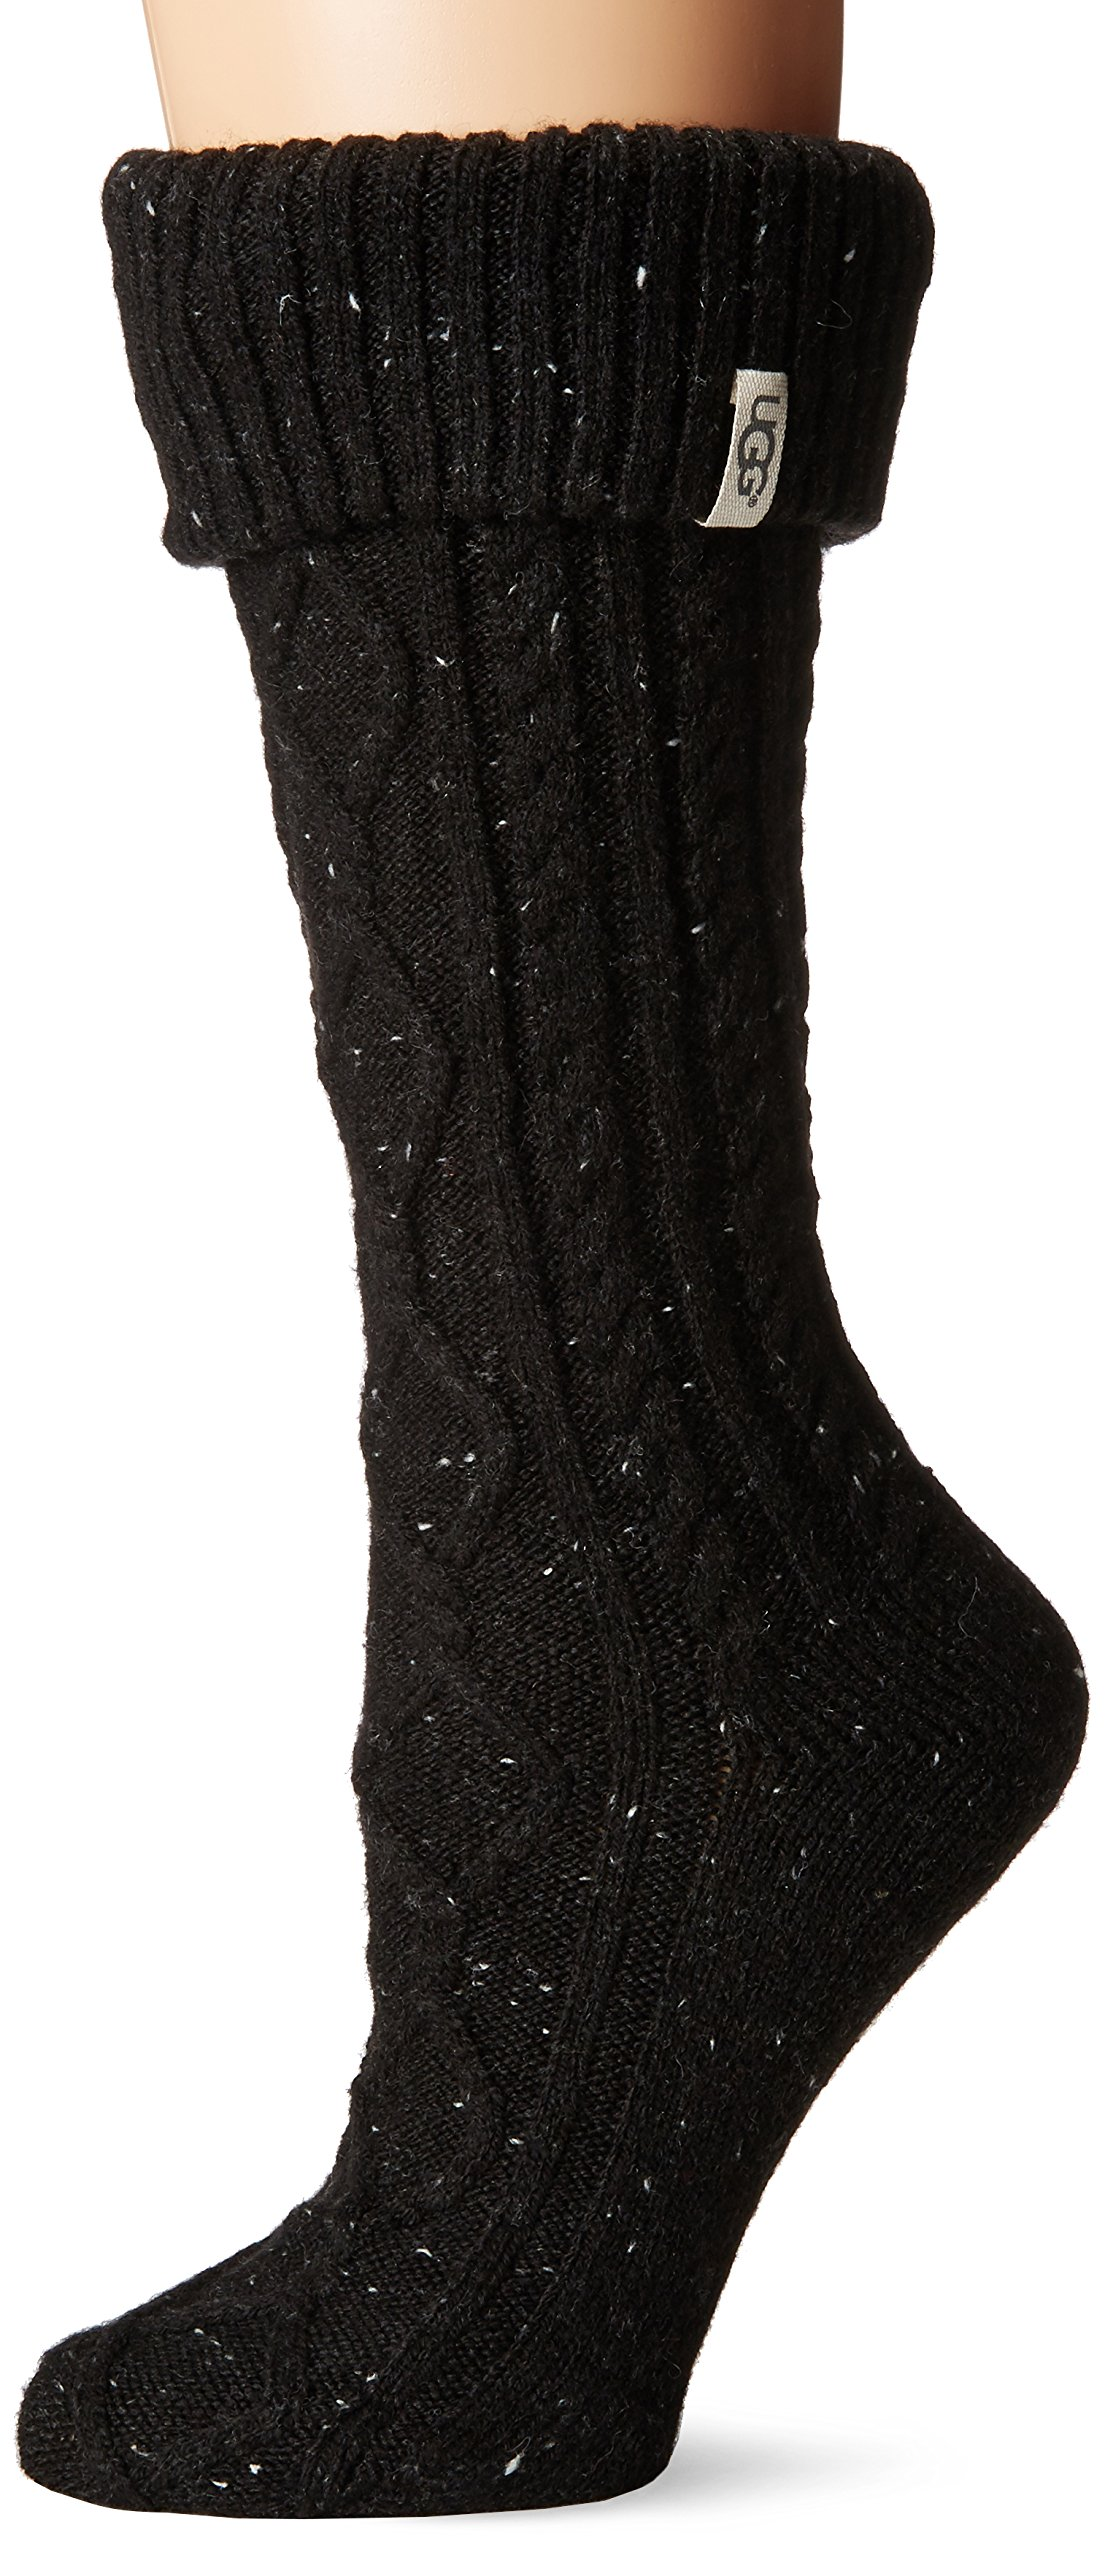 UGG Women's Shaye Tall Rainboot Sock, black, O/S by UGG